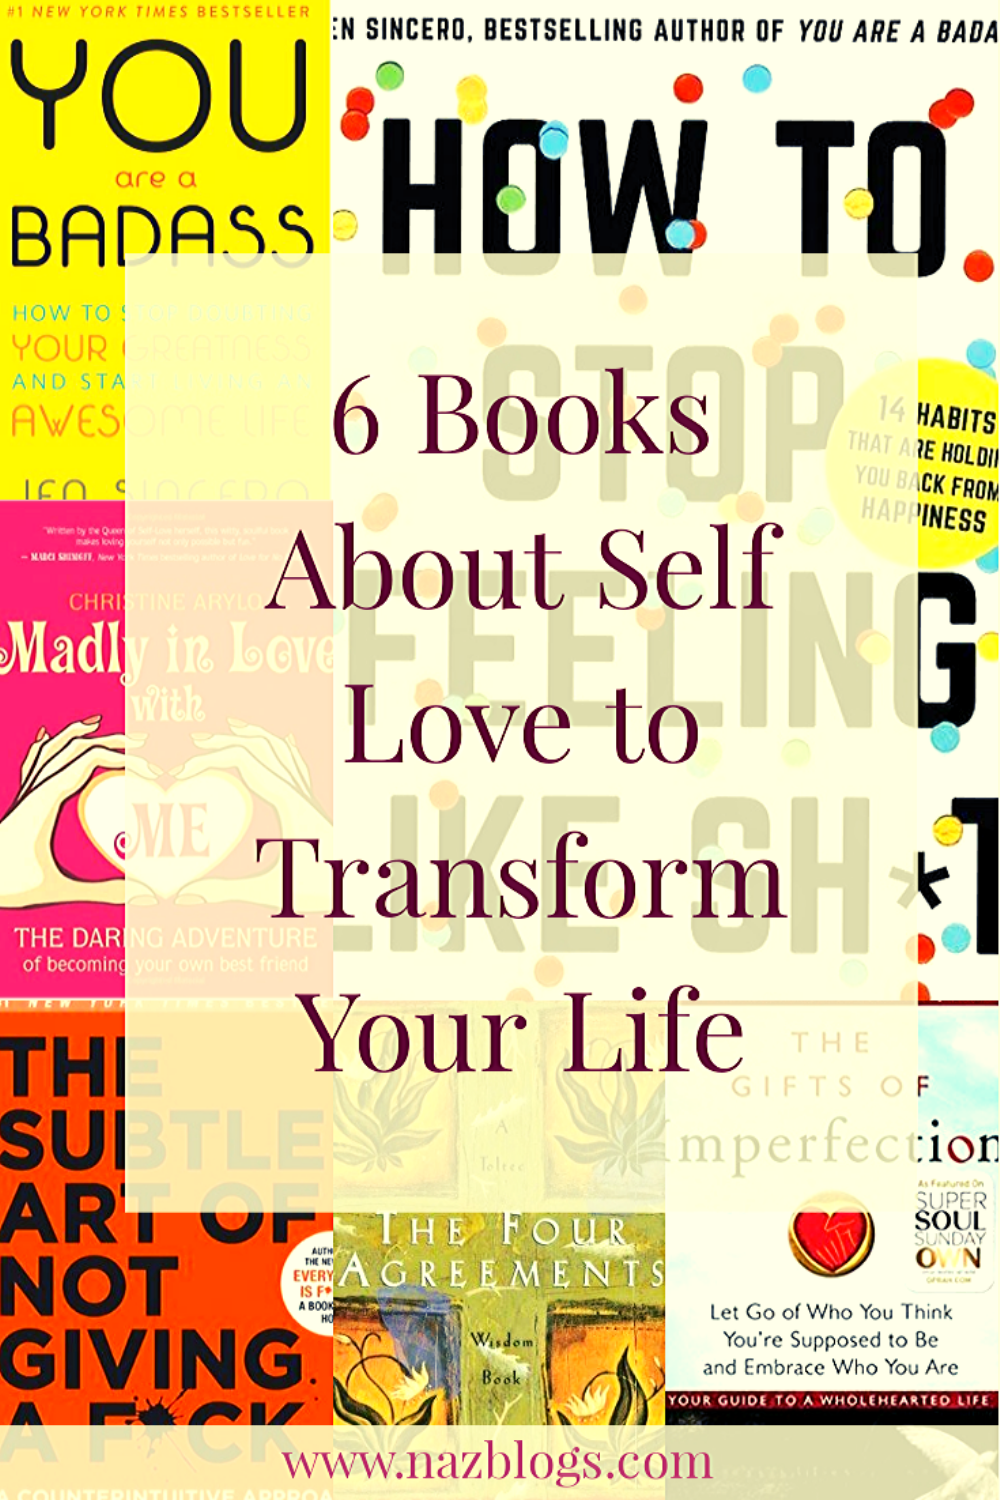 How To Stop Feeling Like Sh*t and 5 More Books about self-love to heal your soul. These are the best books on learning to love yourself. Best Books on self-compassion, forgiveness and learn about yourself. These self help books are a must read for people who are struggling to love themselves. #books #bookstoread #selflove #bestbooks #selflovebooks #selfcare #bookstoreadinyour20s #bestbooksin20s #inspirationbooks #booksforwomen #lifechangingbooks